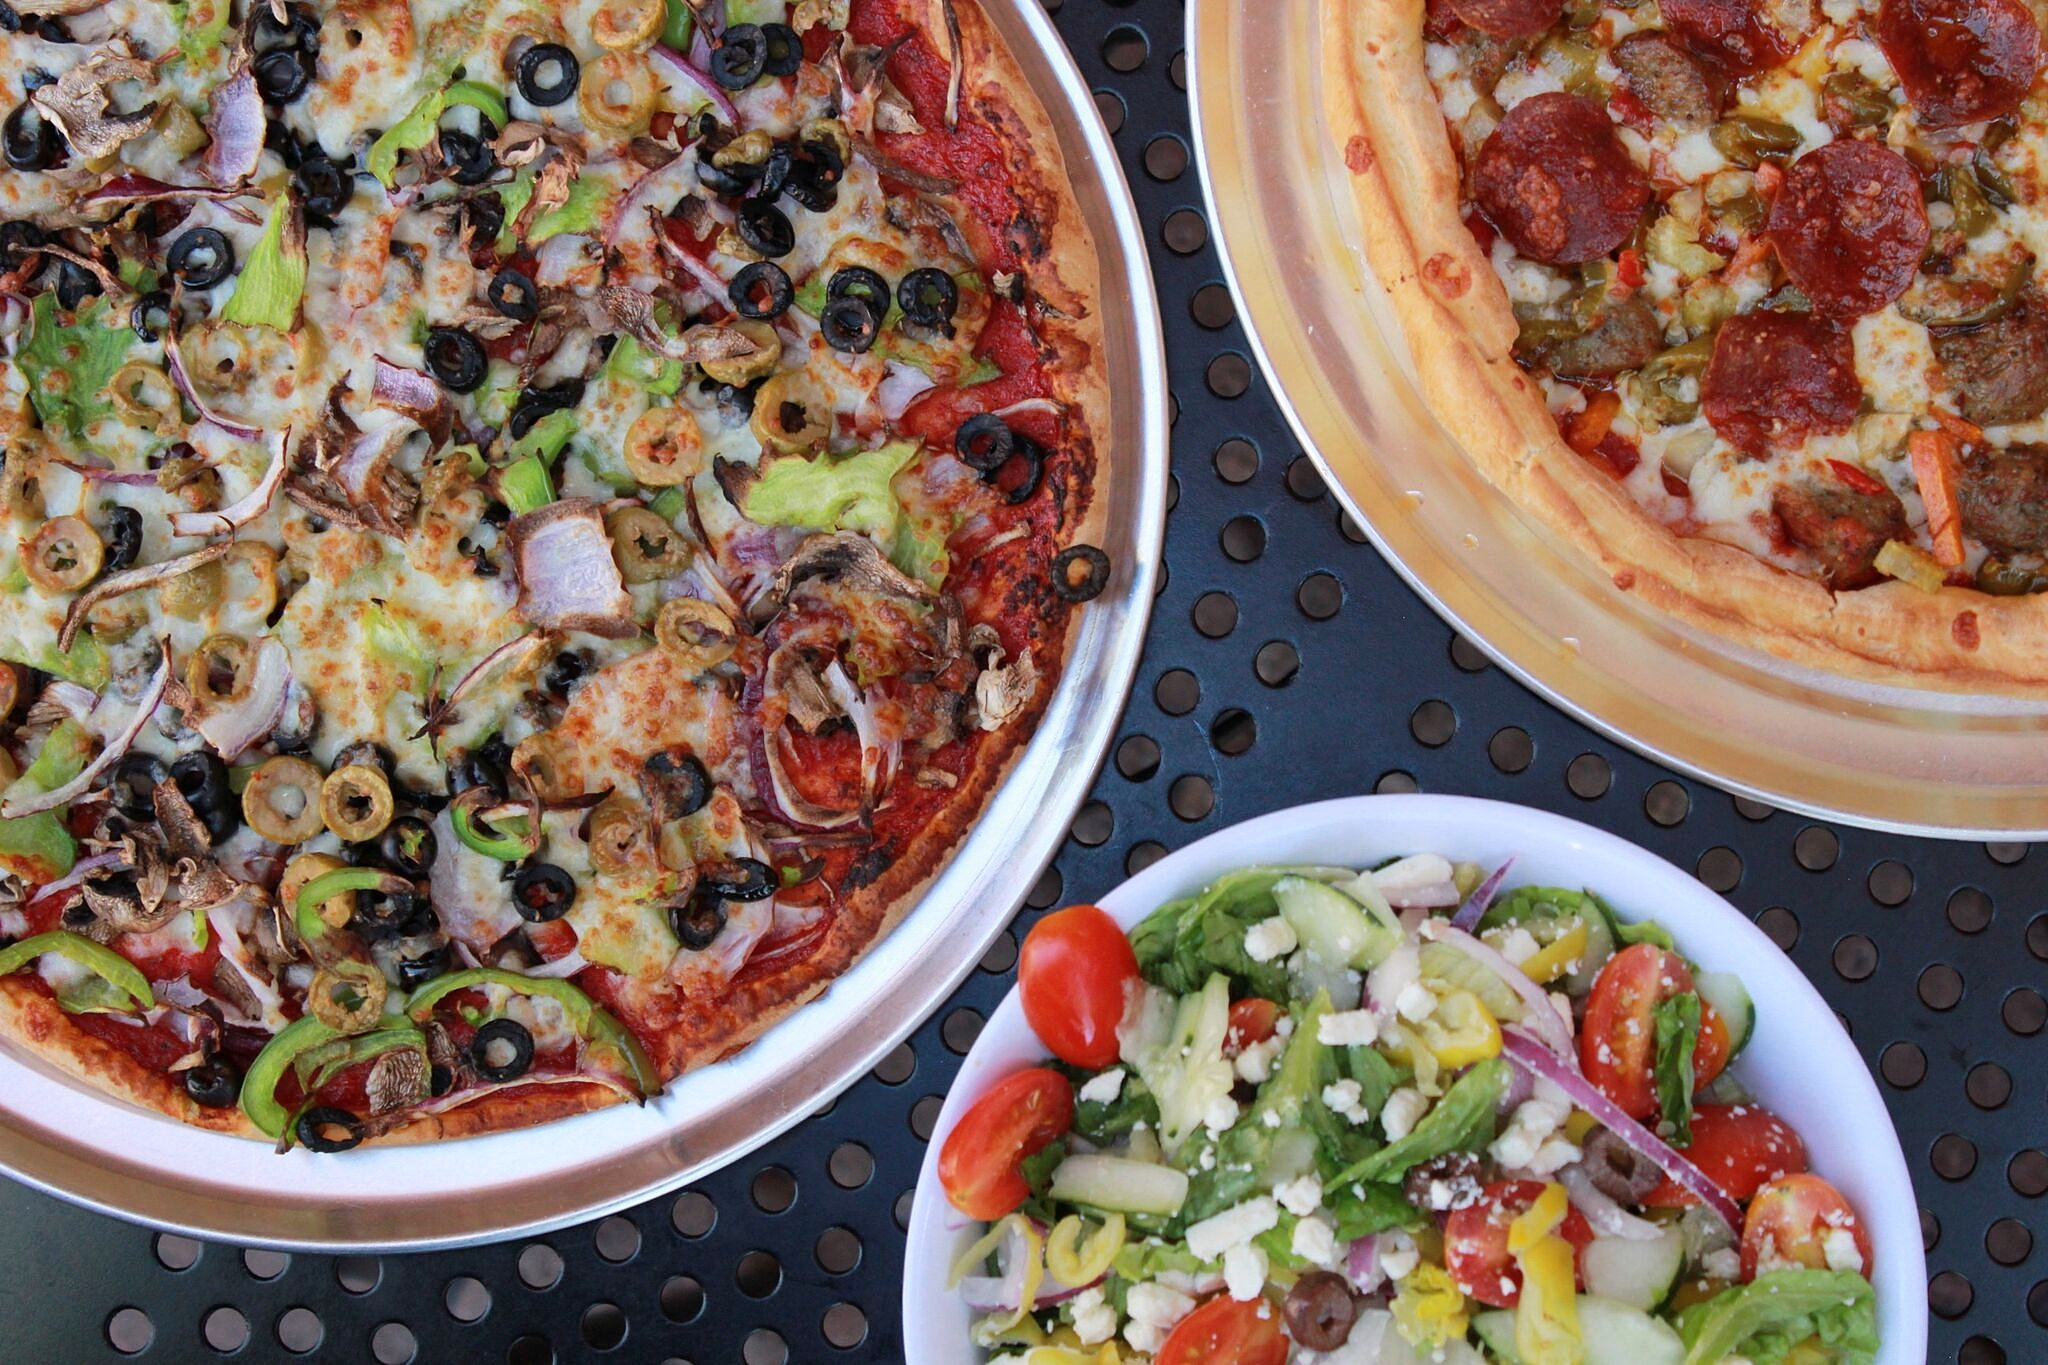 Da Works Thin Crust, Cobb Salad, and Old School Deep Dish | photo courtesy of 100eats